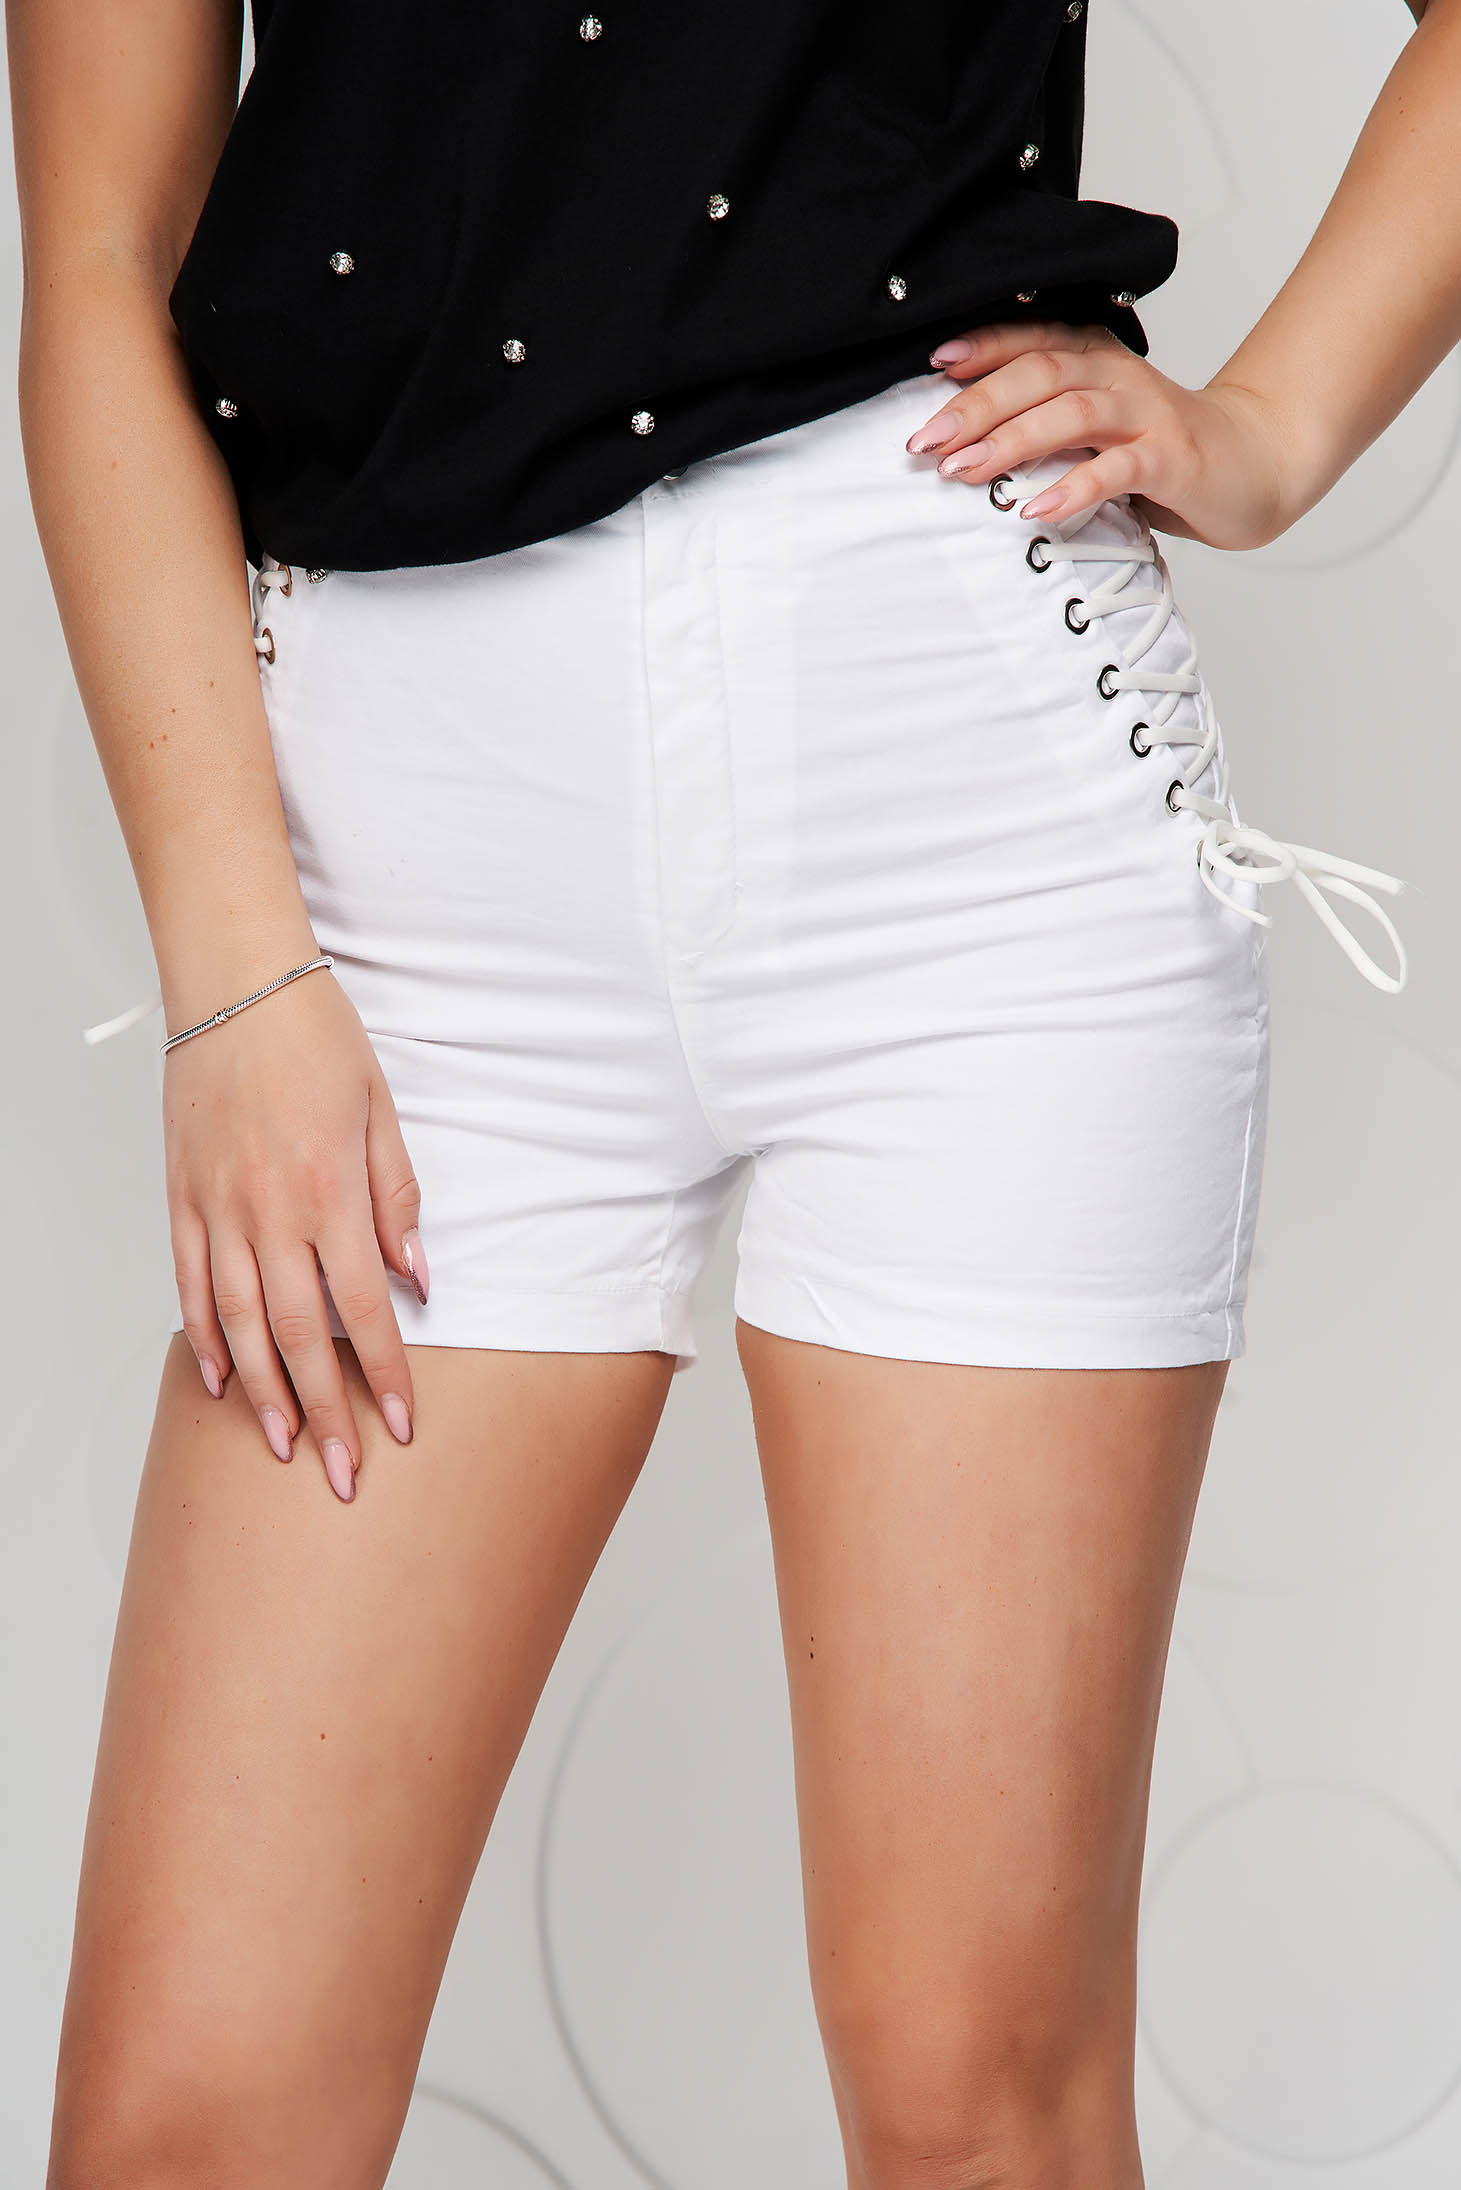 Ivory short high waisted tented with laced details from elastic fabric